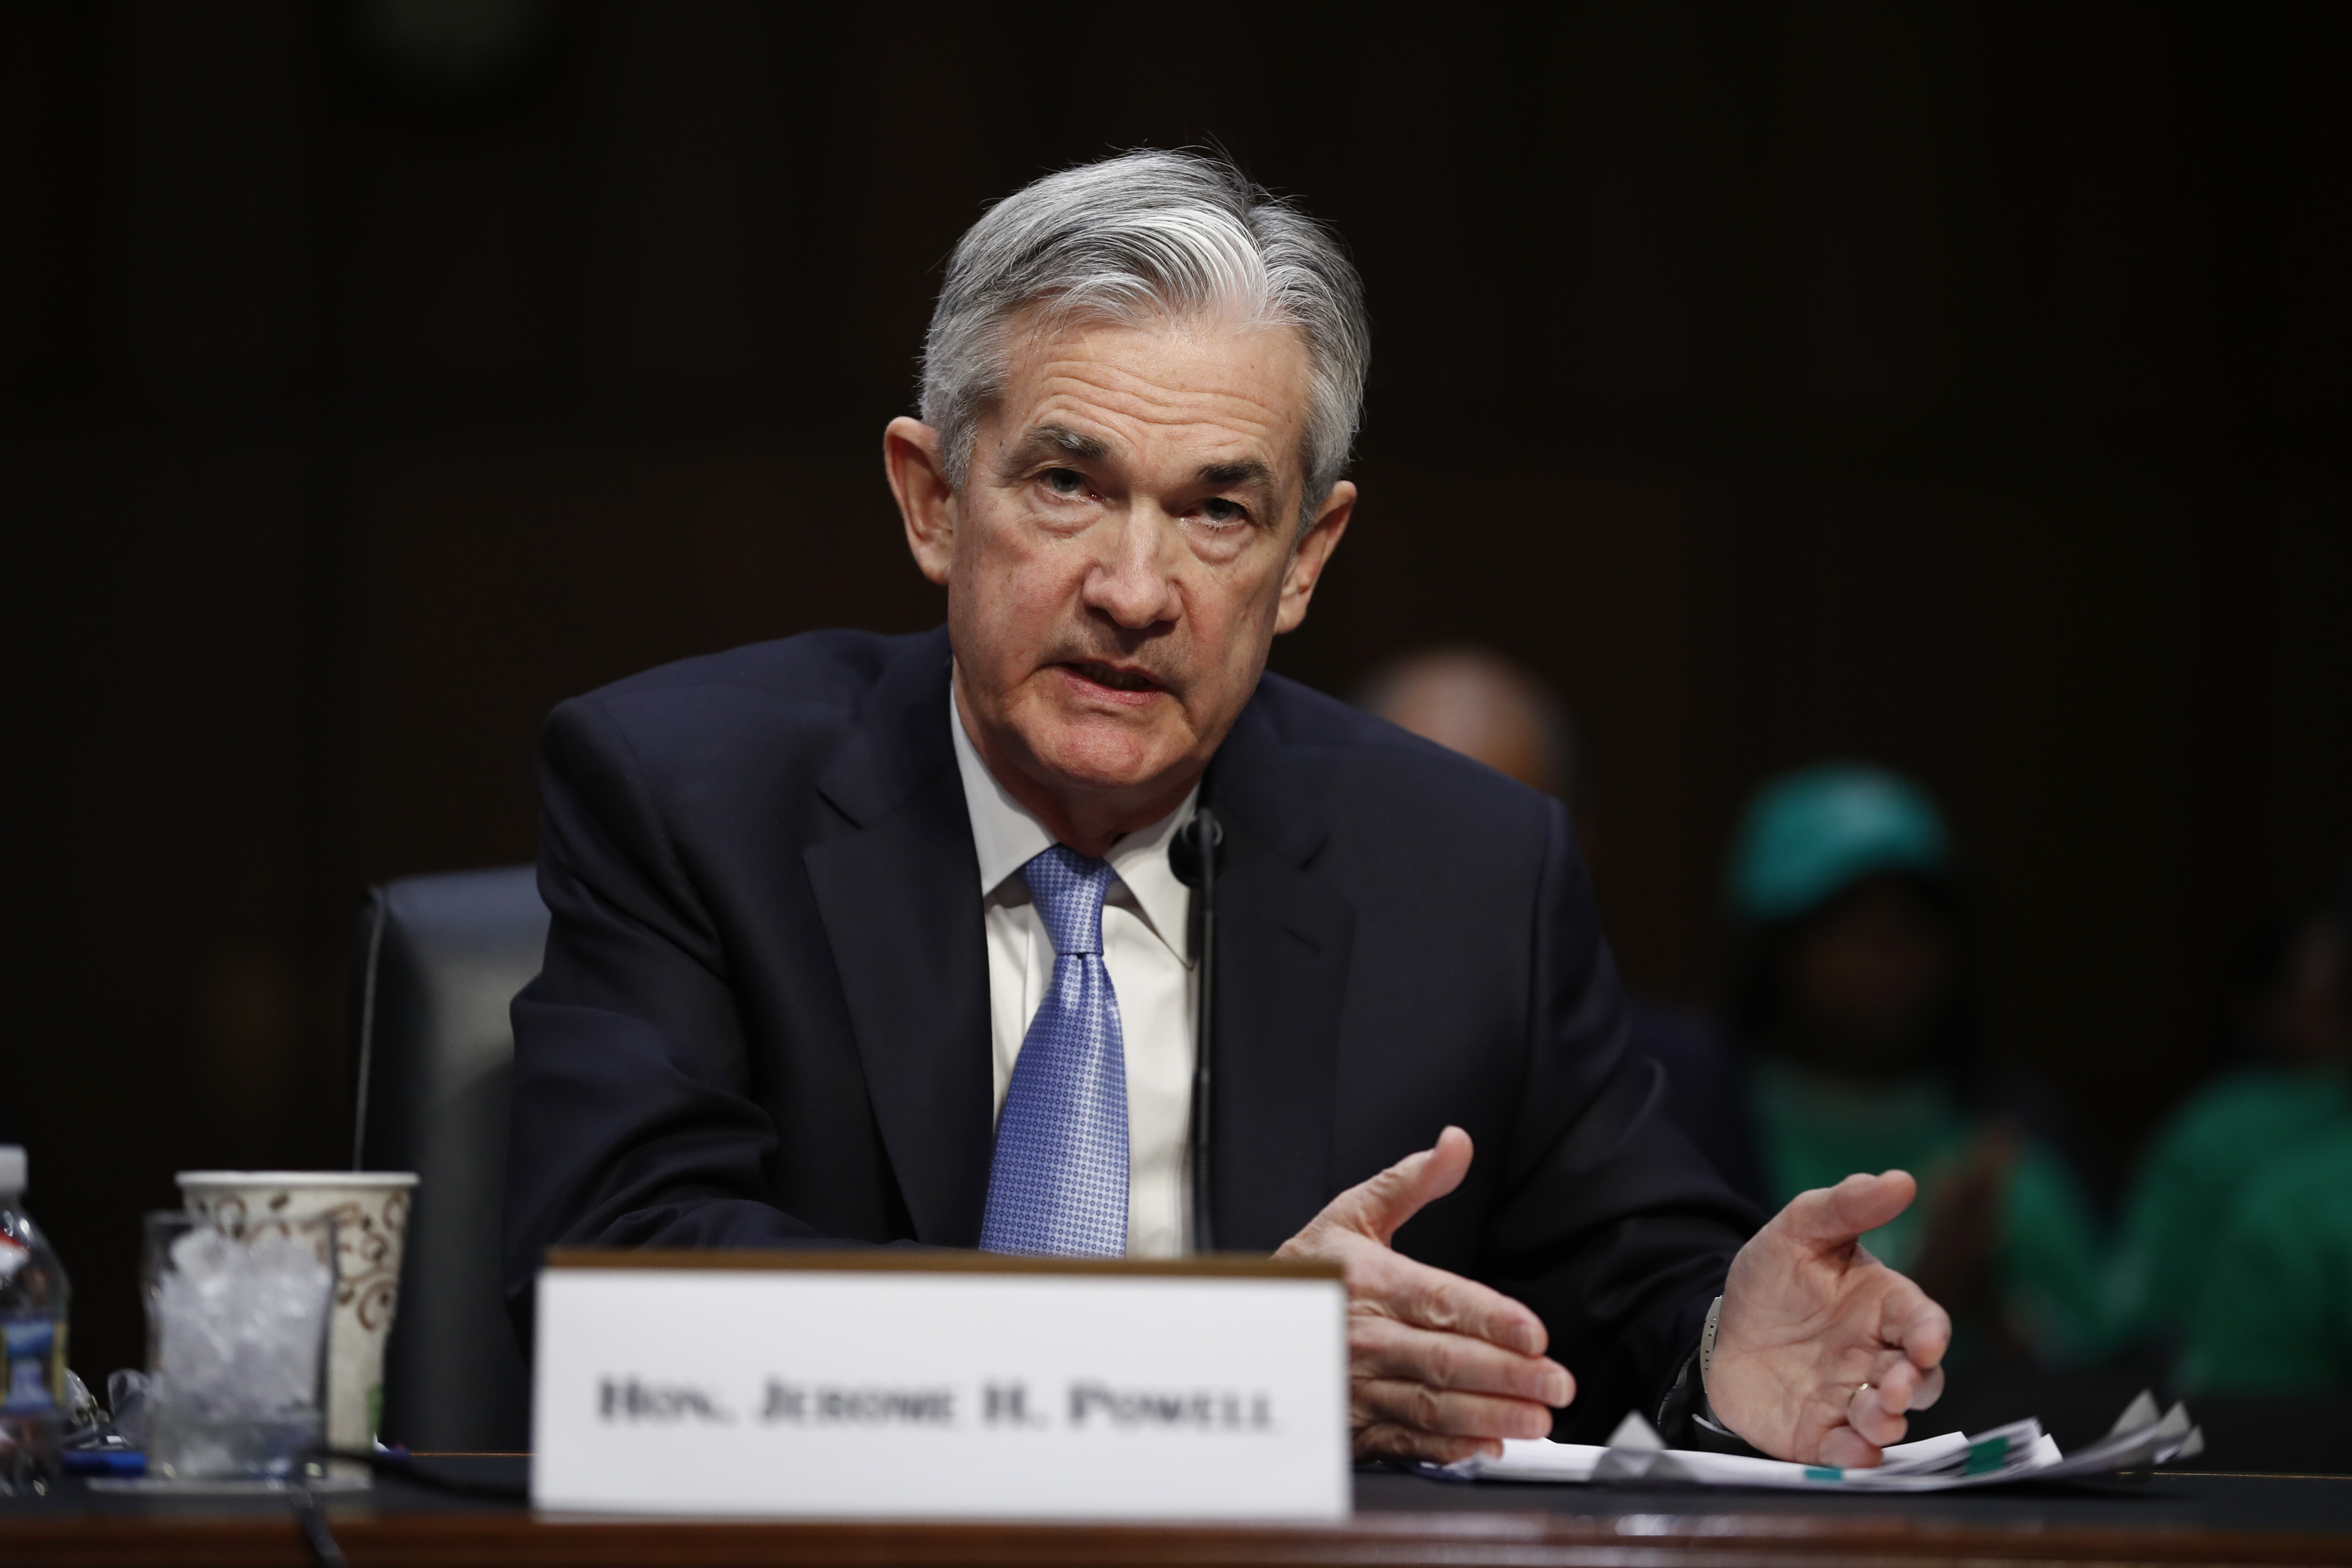 Jerome Powell, President Donald Trump's nominee for chairman of the Federal Reserve, testifies during a Senate Banking, Housing, and Urban Affairs Committee confirmation hearing on Capitol Hill, Nov. 28, 2017.